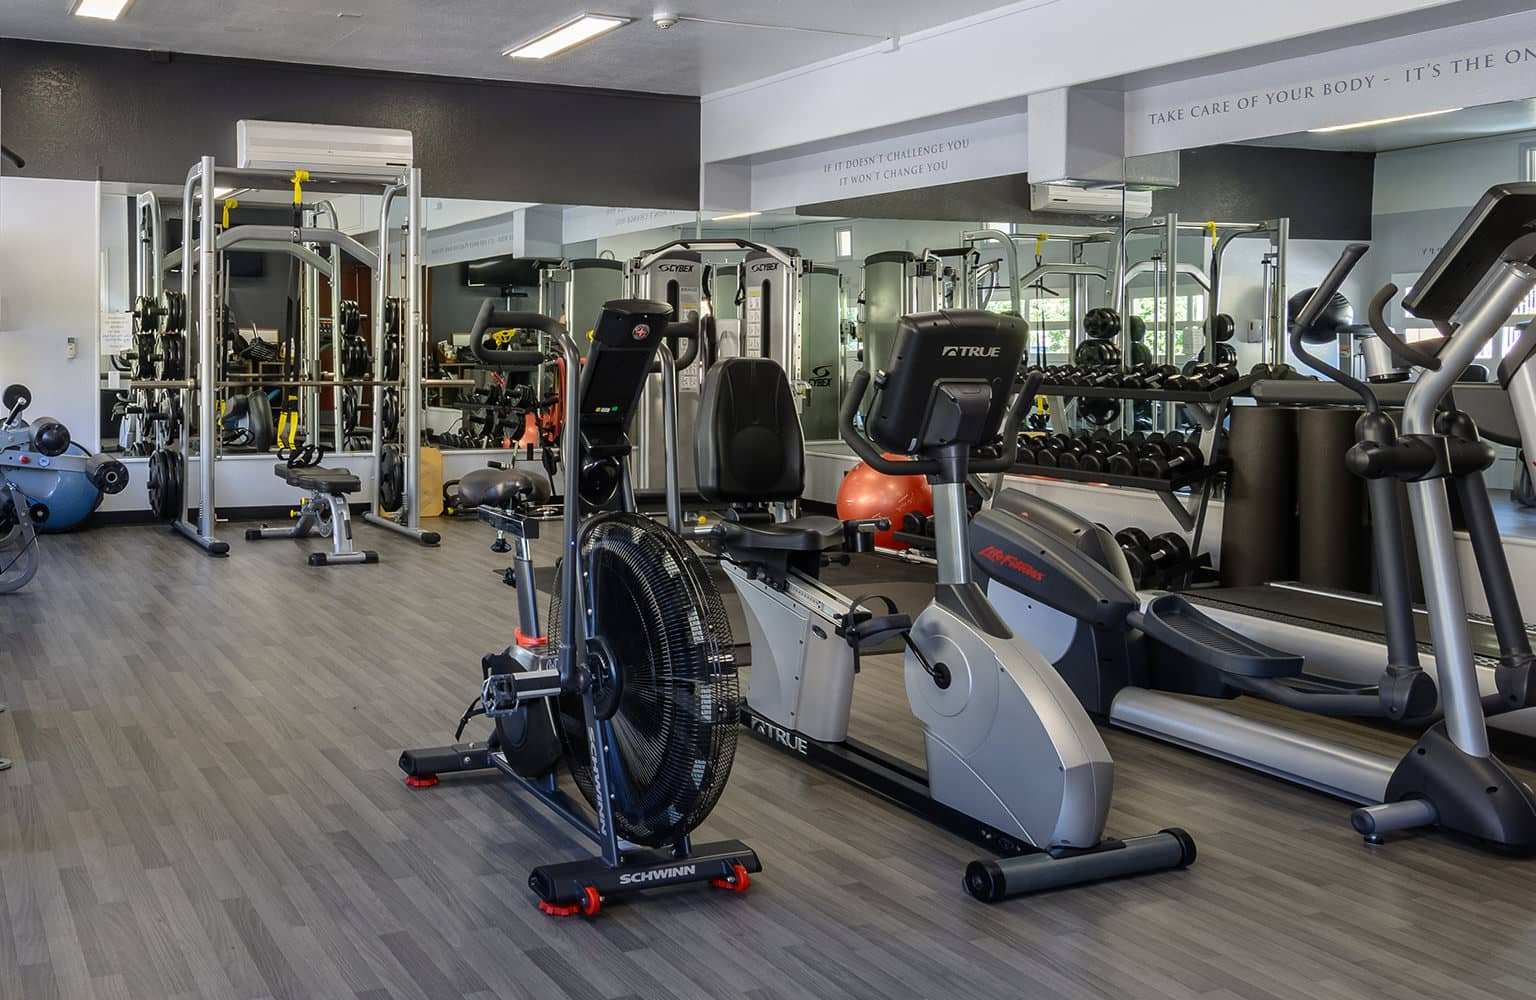 Full Gym with Personal Trainers